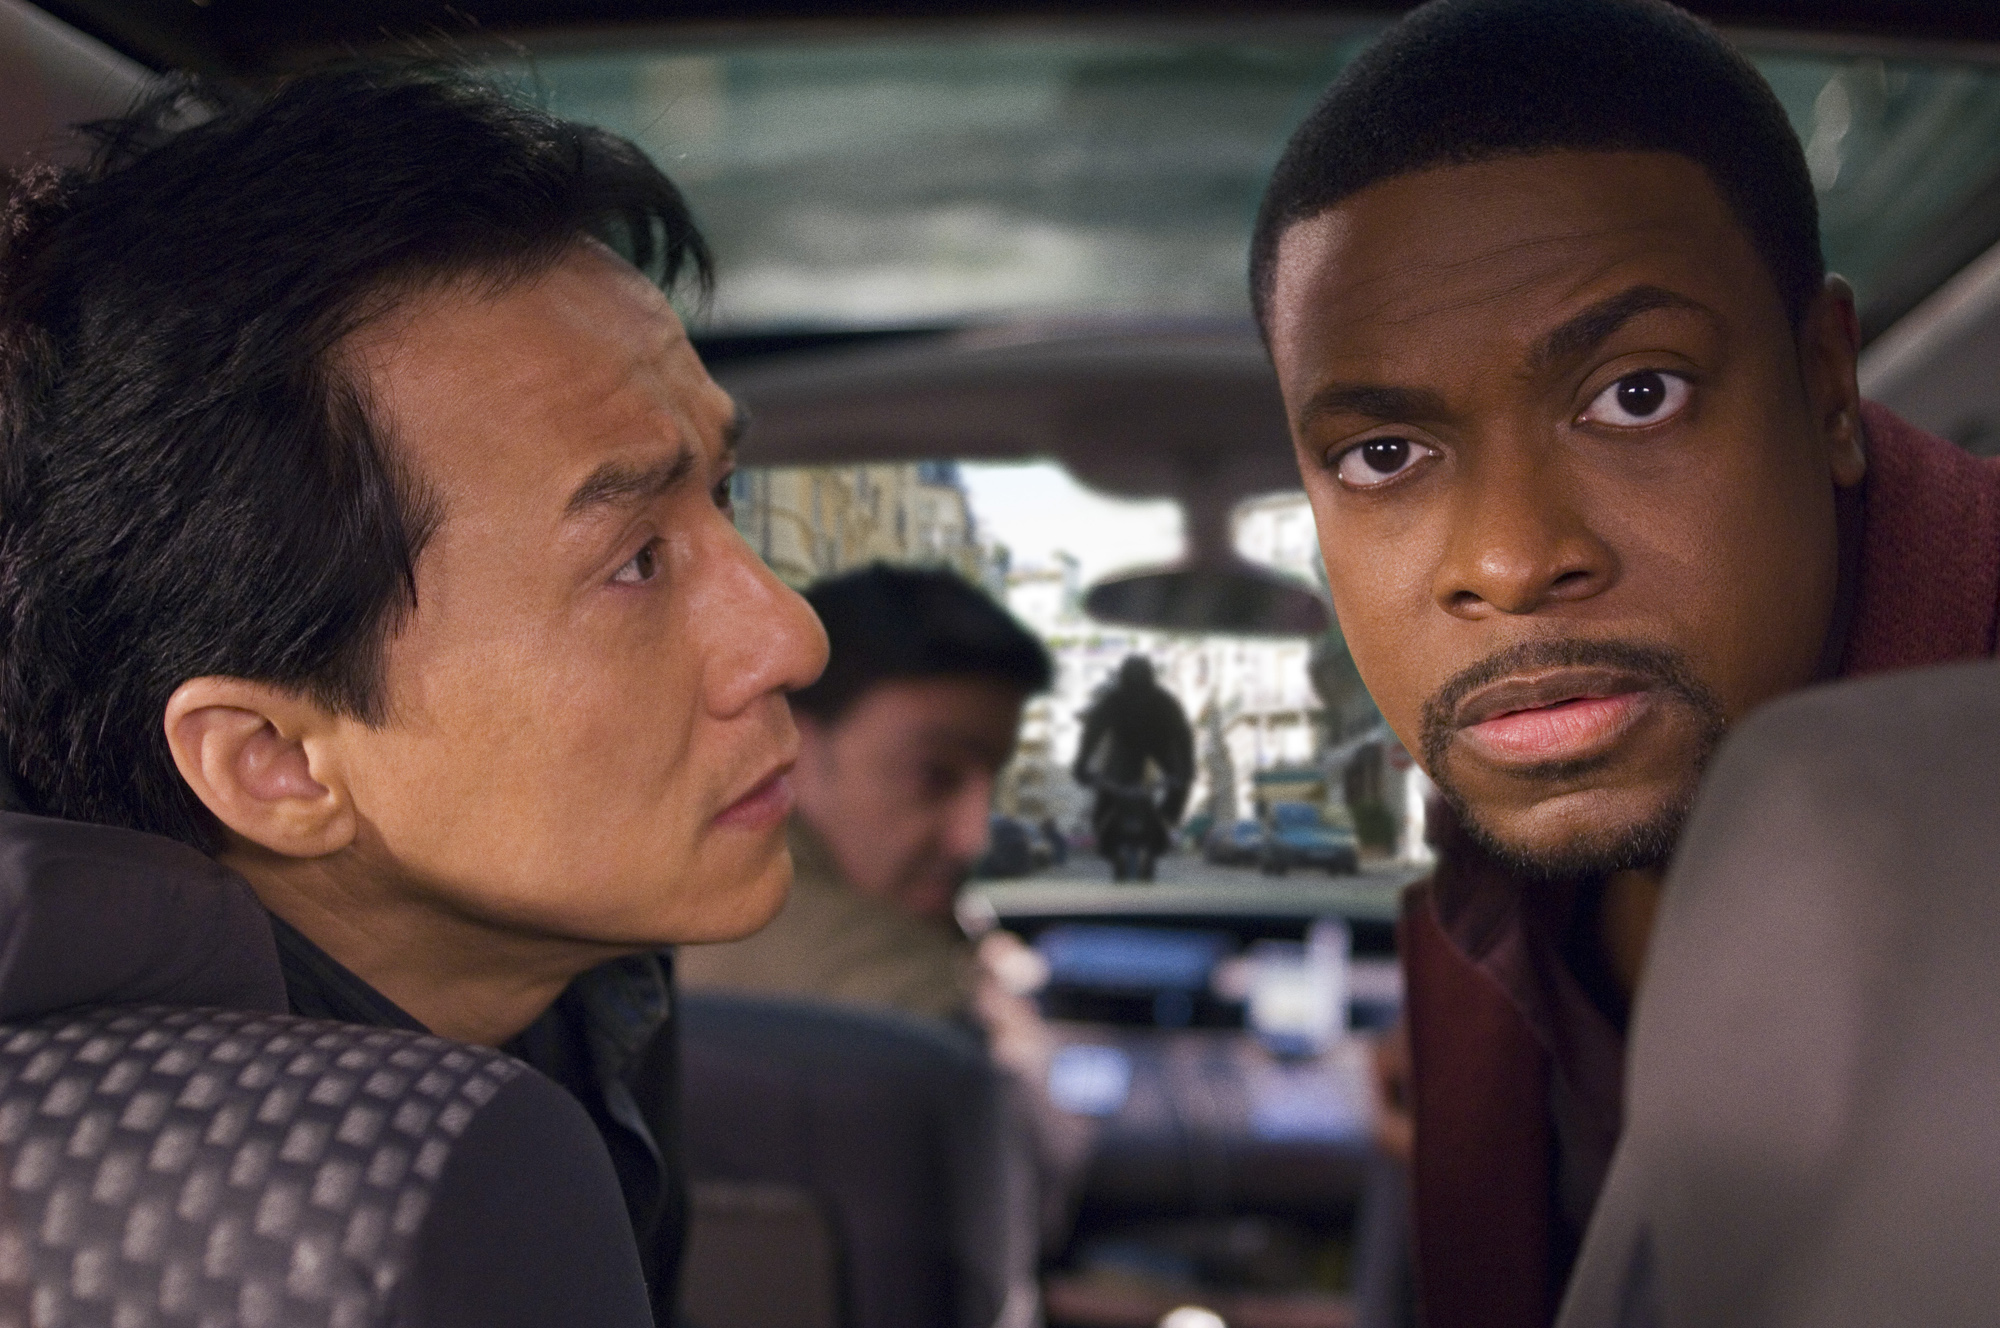 Rush hour 3 hd wallpaper background image 2000x1328 id 640505 wallpaper abyss - Jackie chan wallpaper download ...